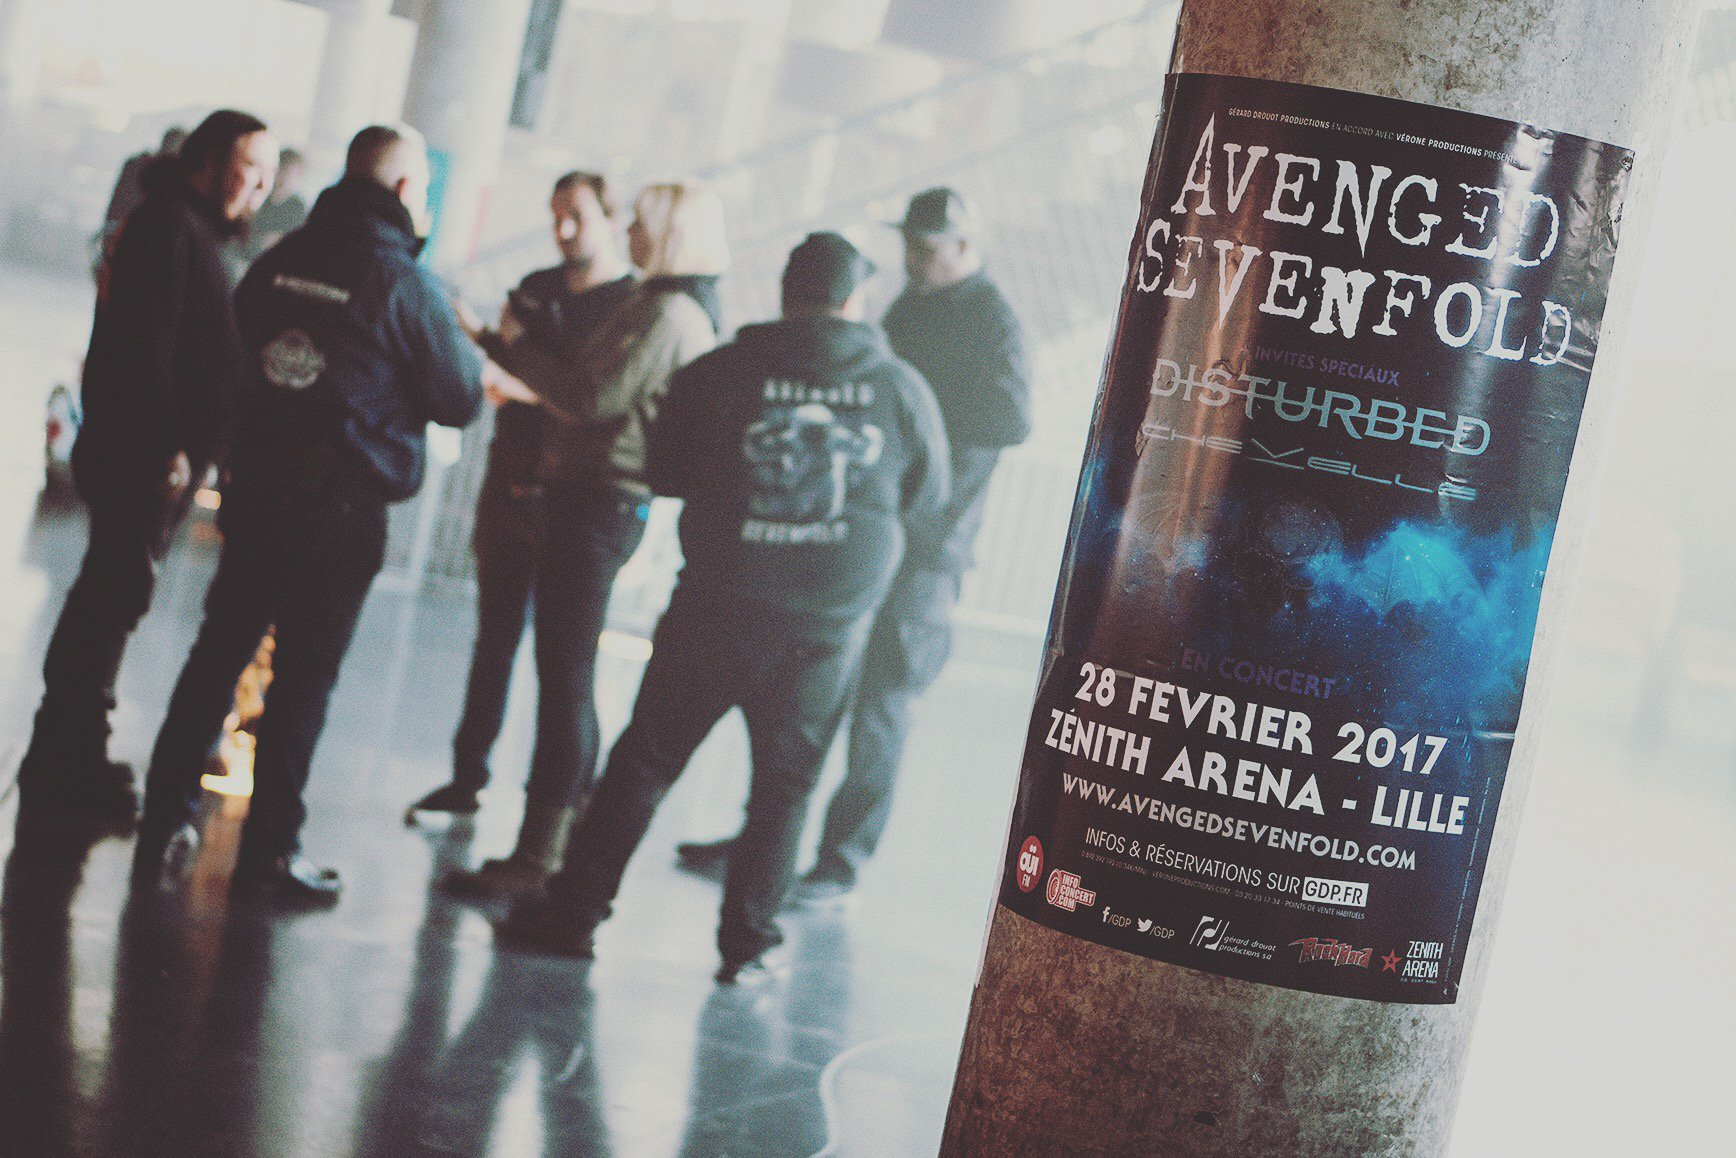 Security meeting before tonight's show in Lille, France. ����#thestageworldtour #avengedsevenfold ��: @rafacore https://t.co/kAoY0QLkGf